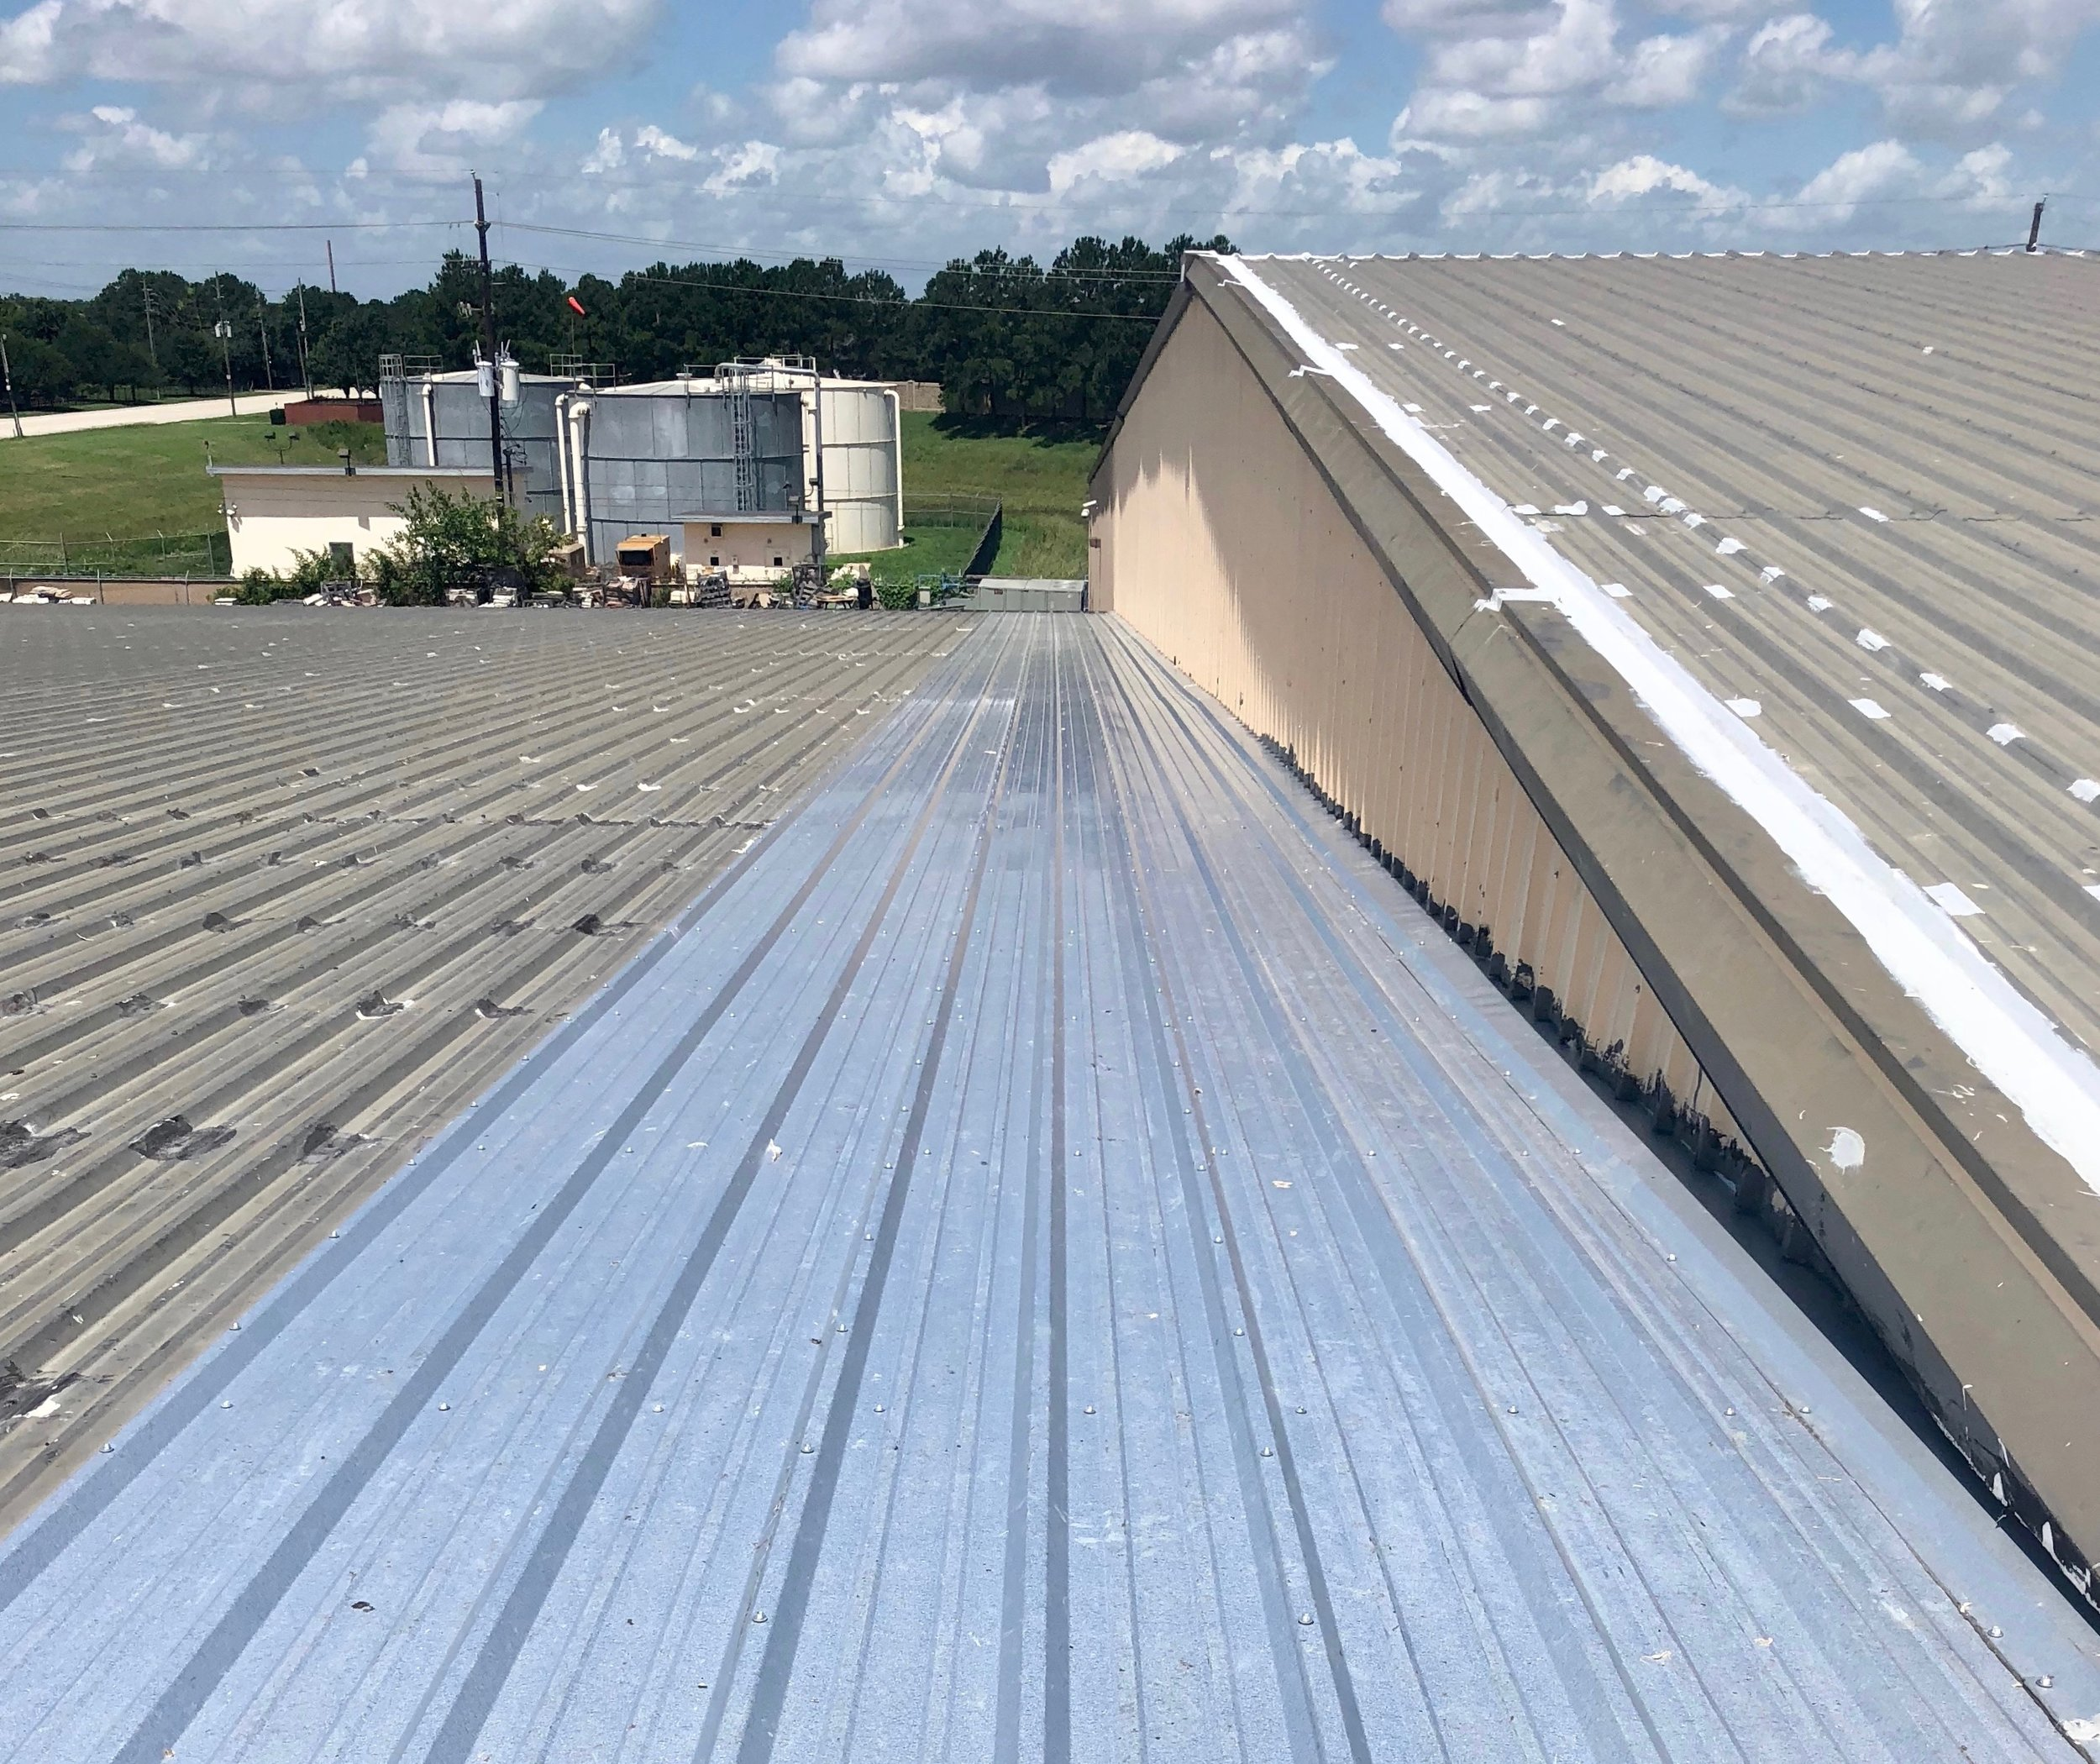 Above: After this metal roof cut and paste was complete the leaks stopped.